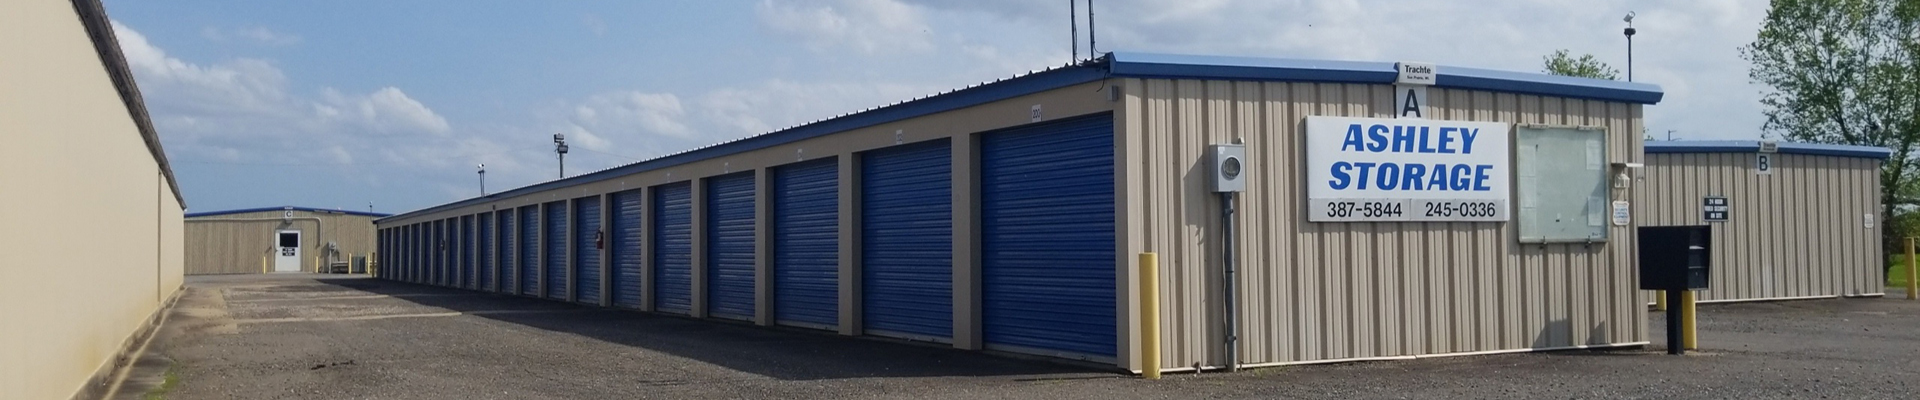 Ashley Storage units